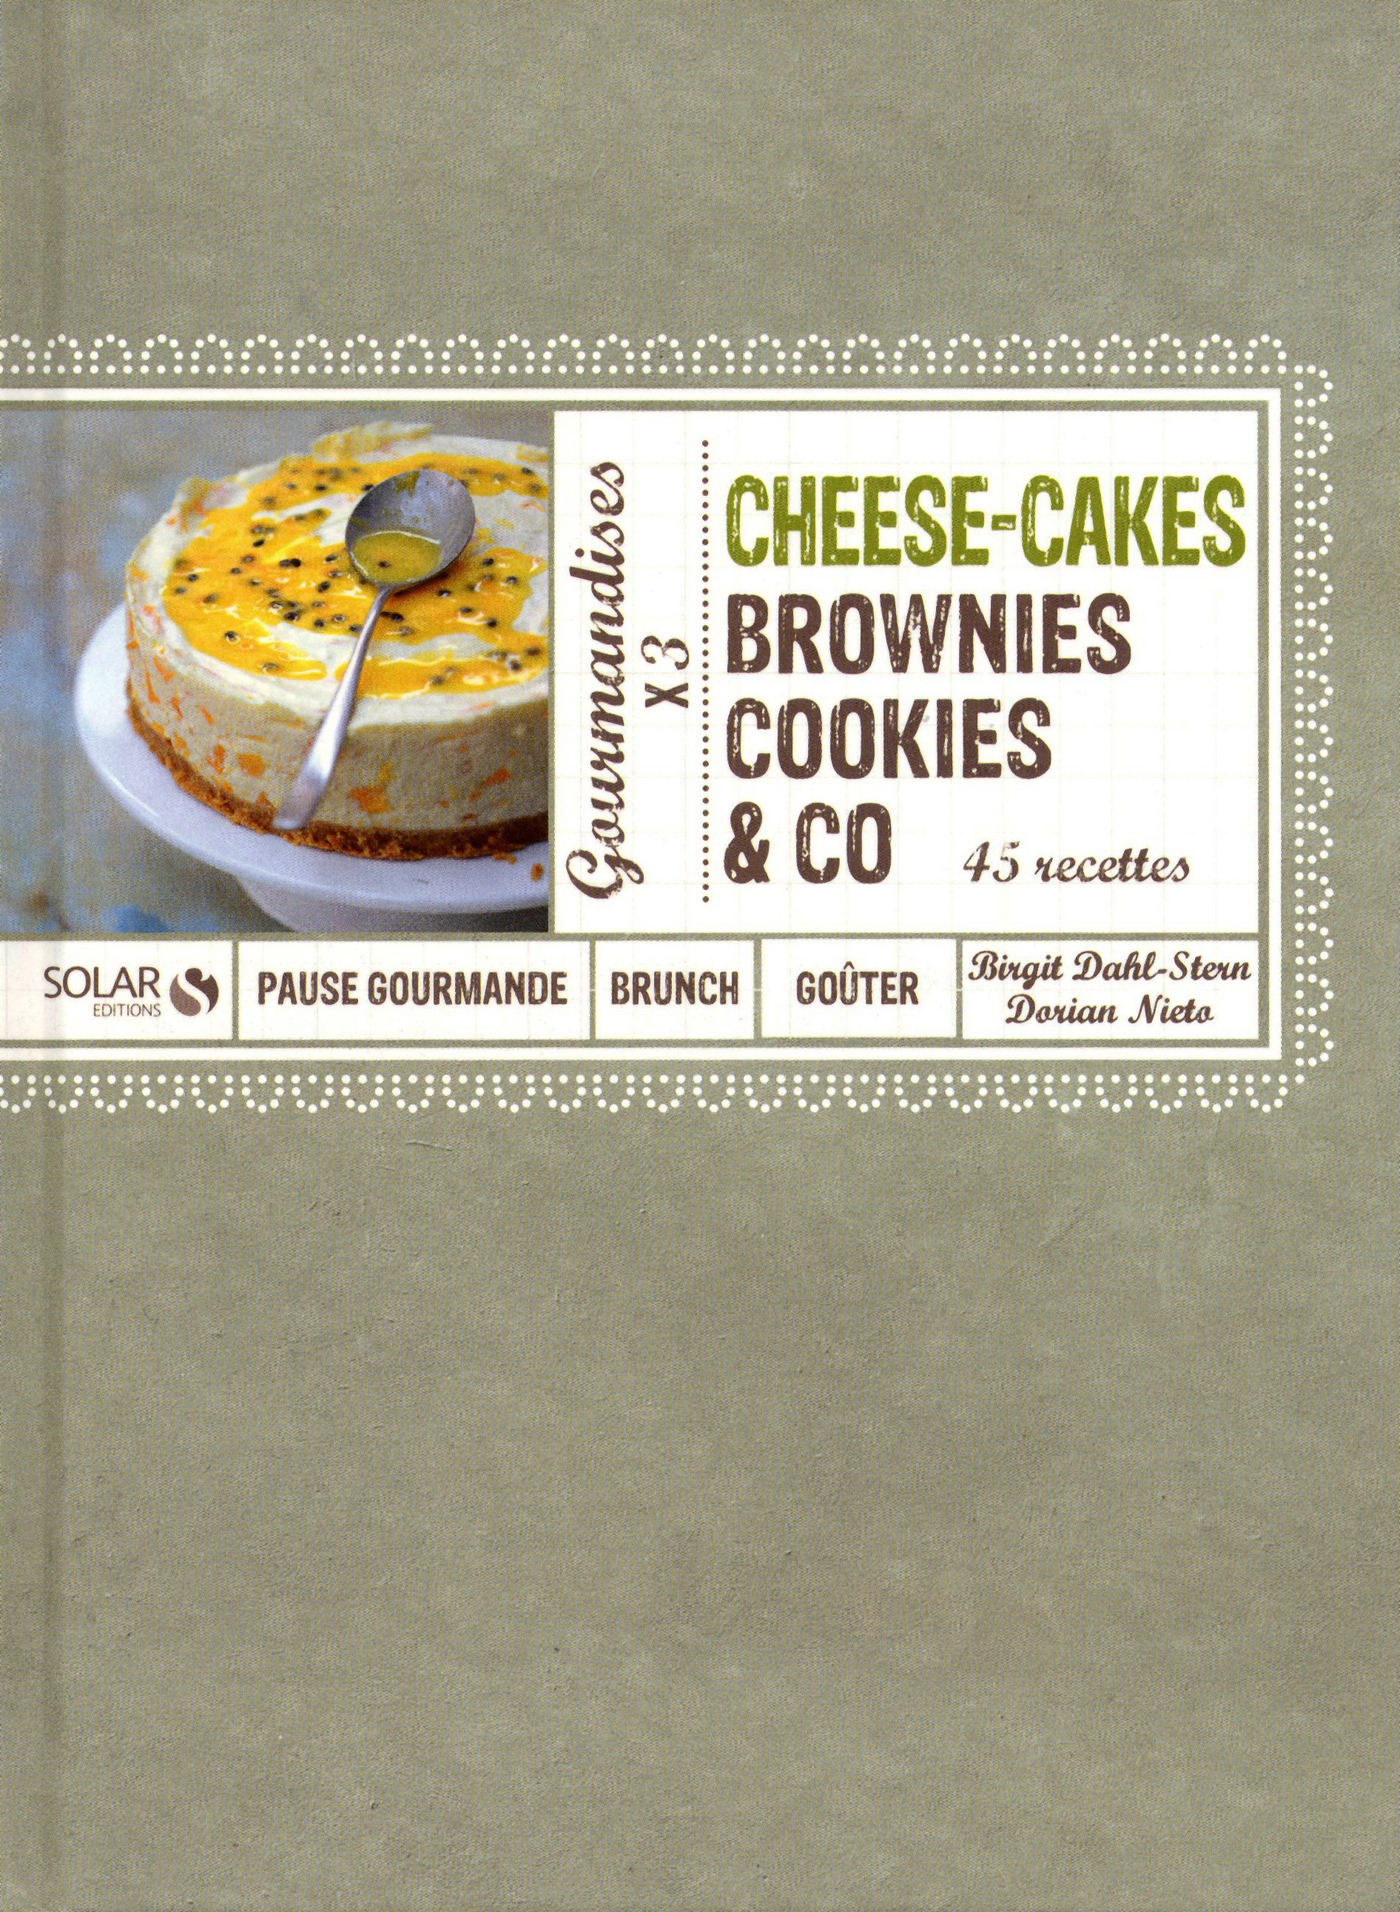 Cheese-Cakes, Brownies, Cookies & Co, Dorian Nieto